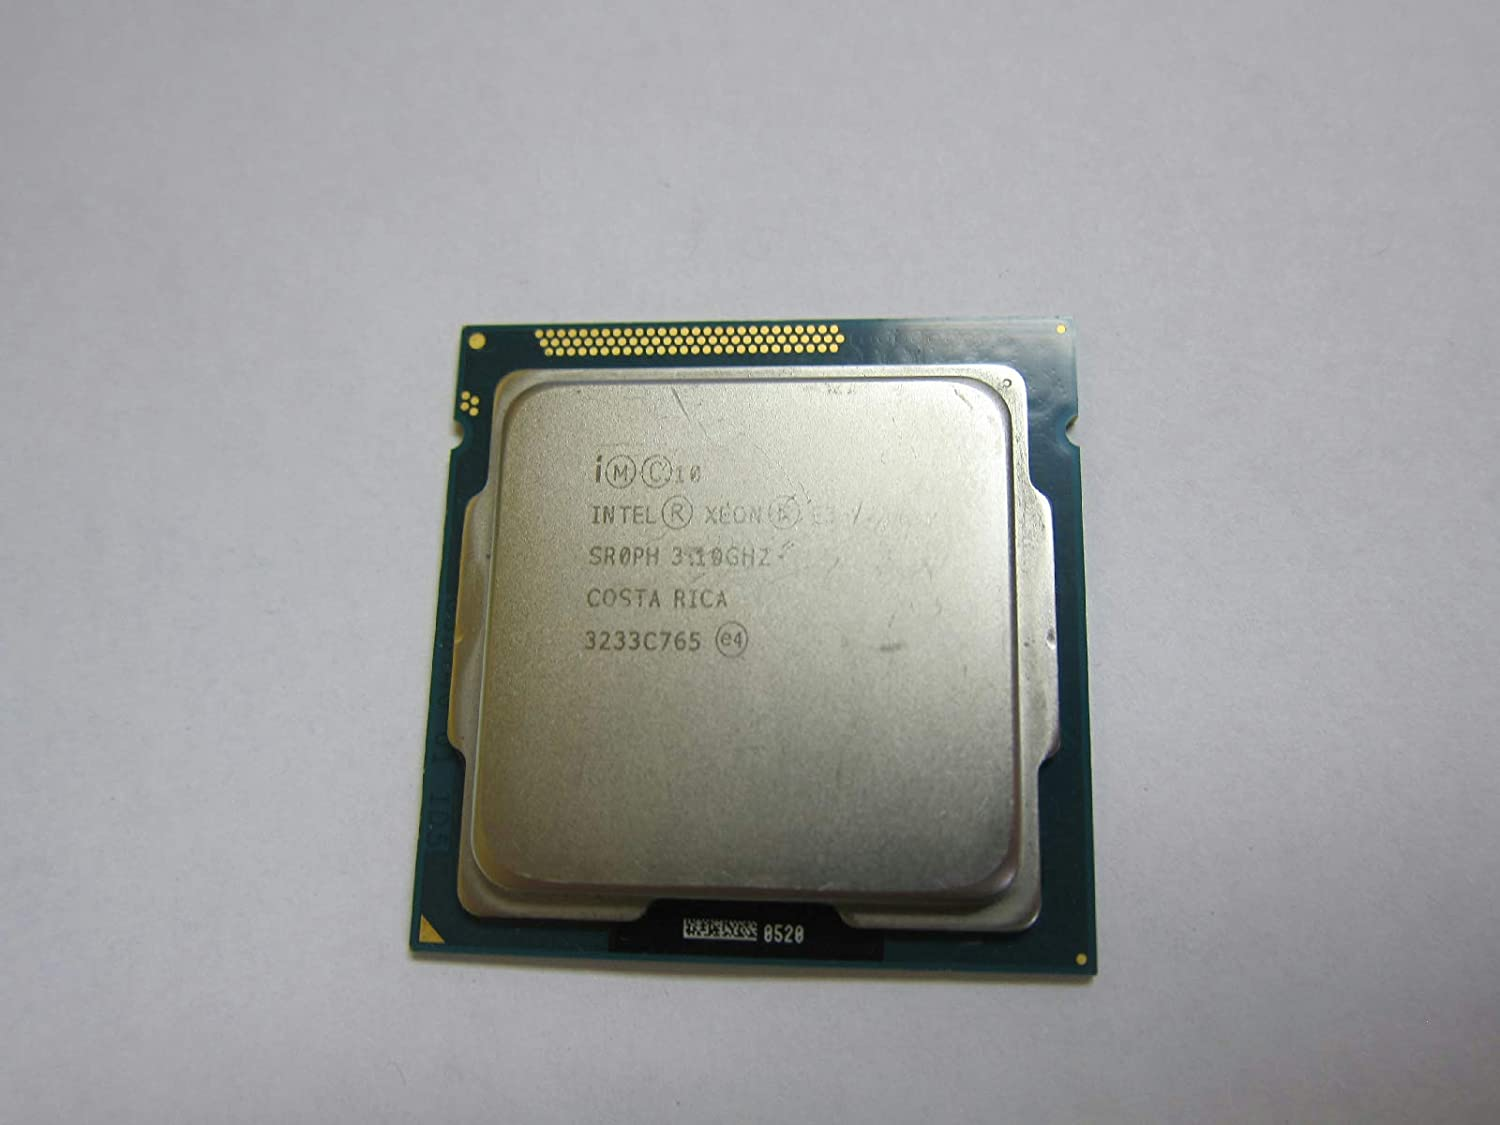 Intel Xeon E3-1220 V2 Quad Core Processor CPU 3.1GHz Socket LGA1155 SR0PH